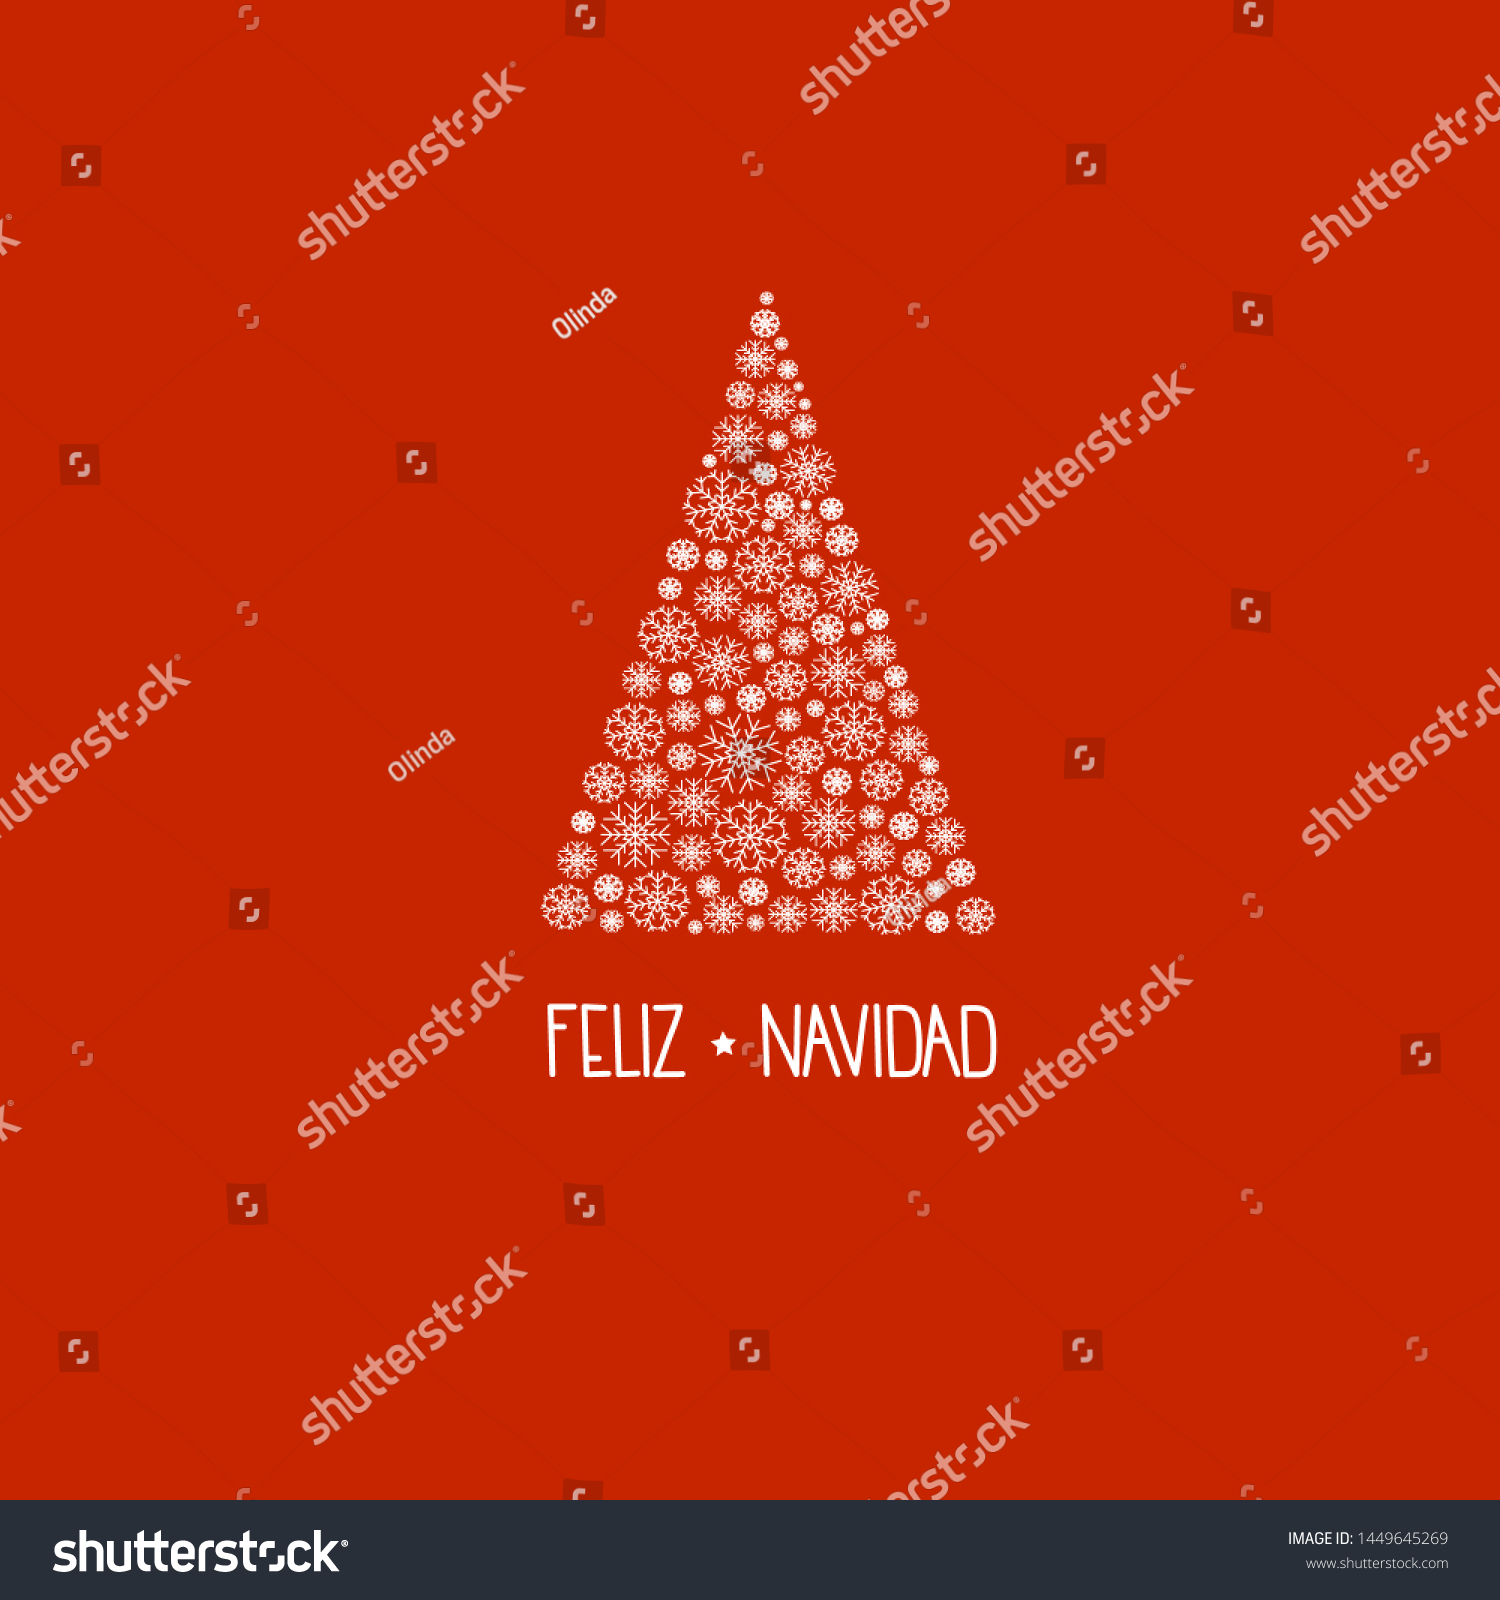 stock vector spanish hand lettering feliz navidad merry christmas on greeting card with fir tree made of white 1449645269